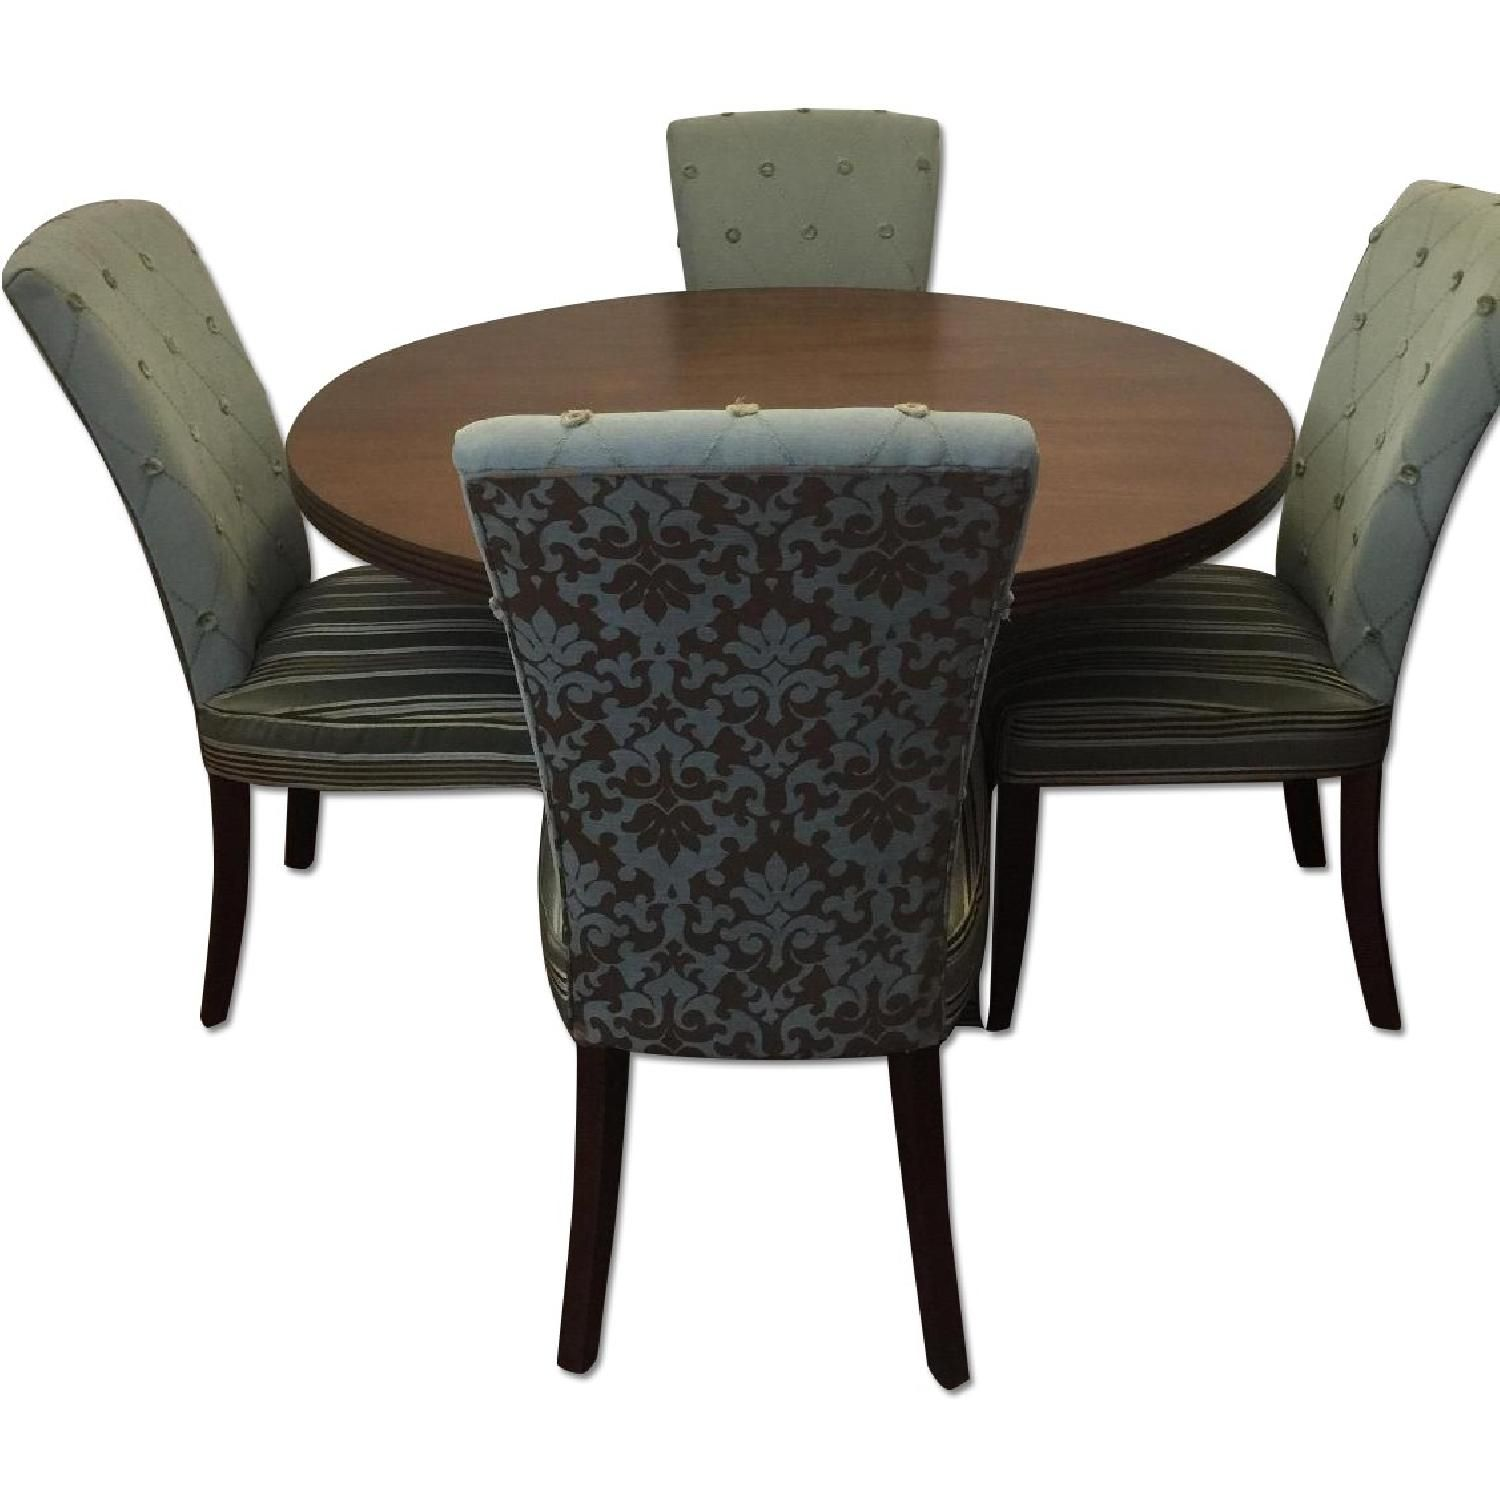 pier 1 dining chairs reviews design ideas 2017 2018